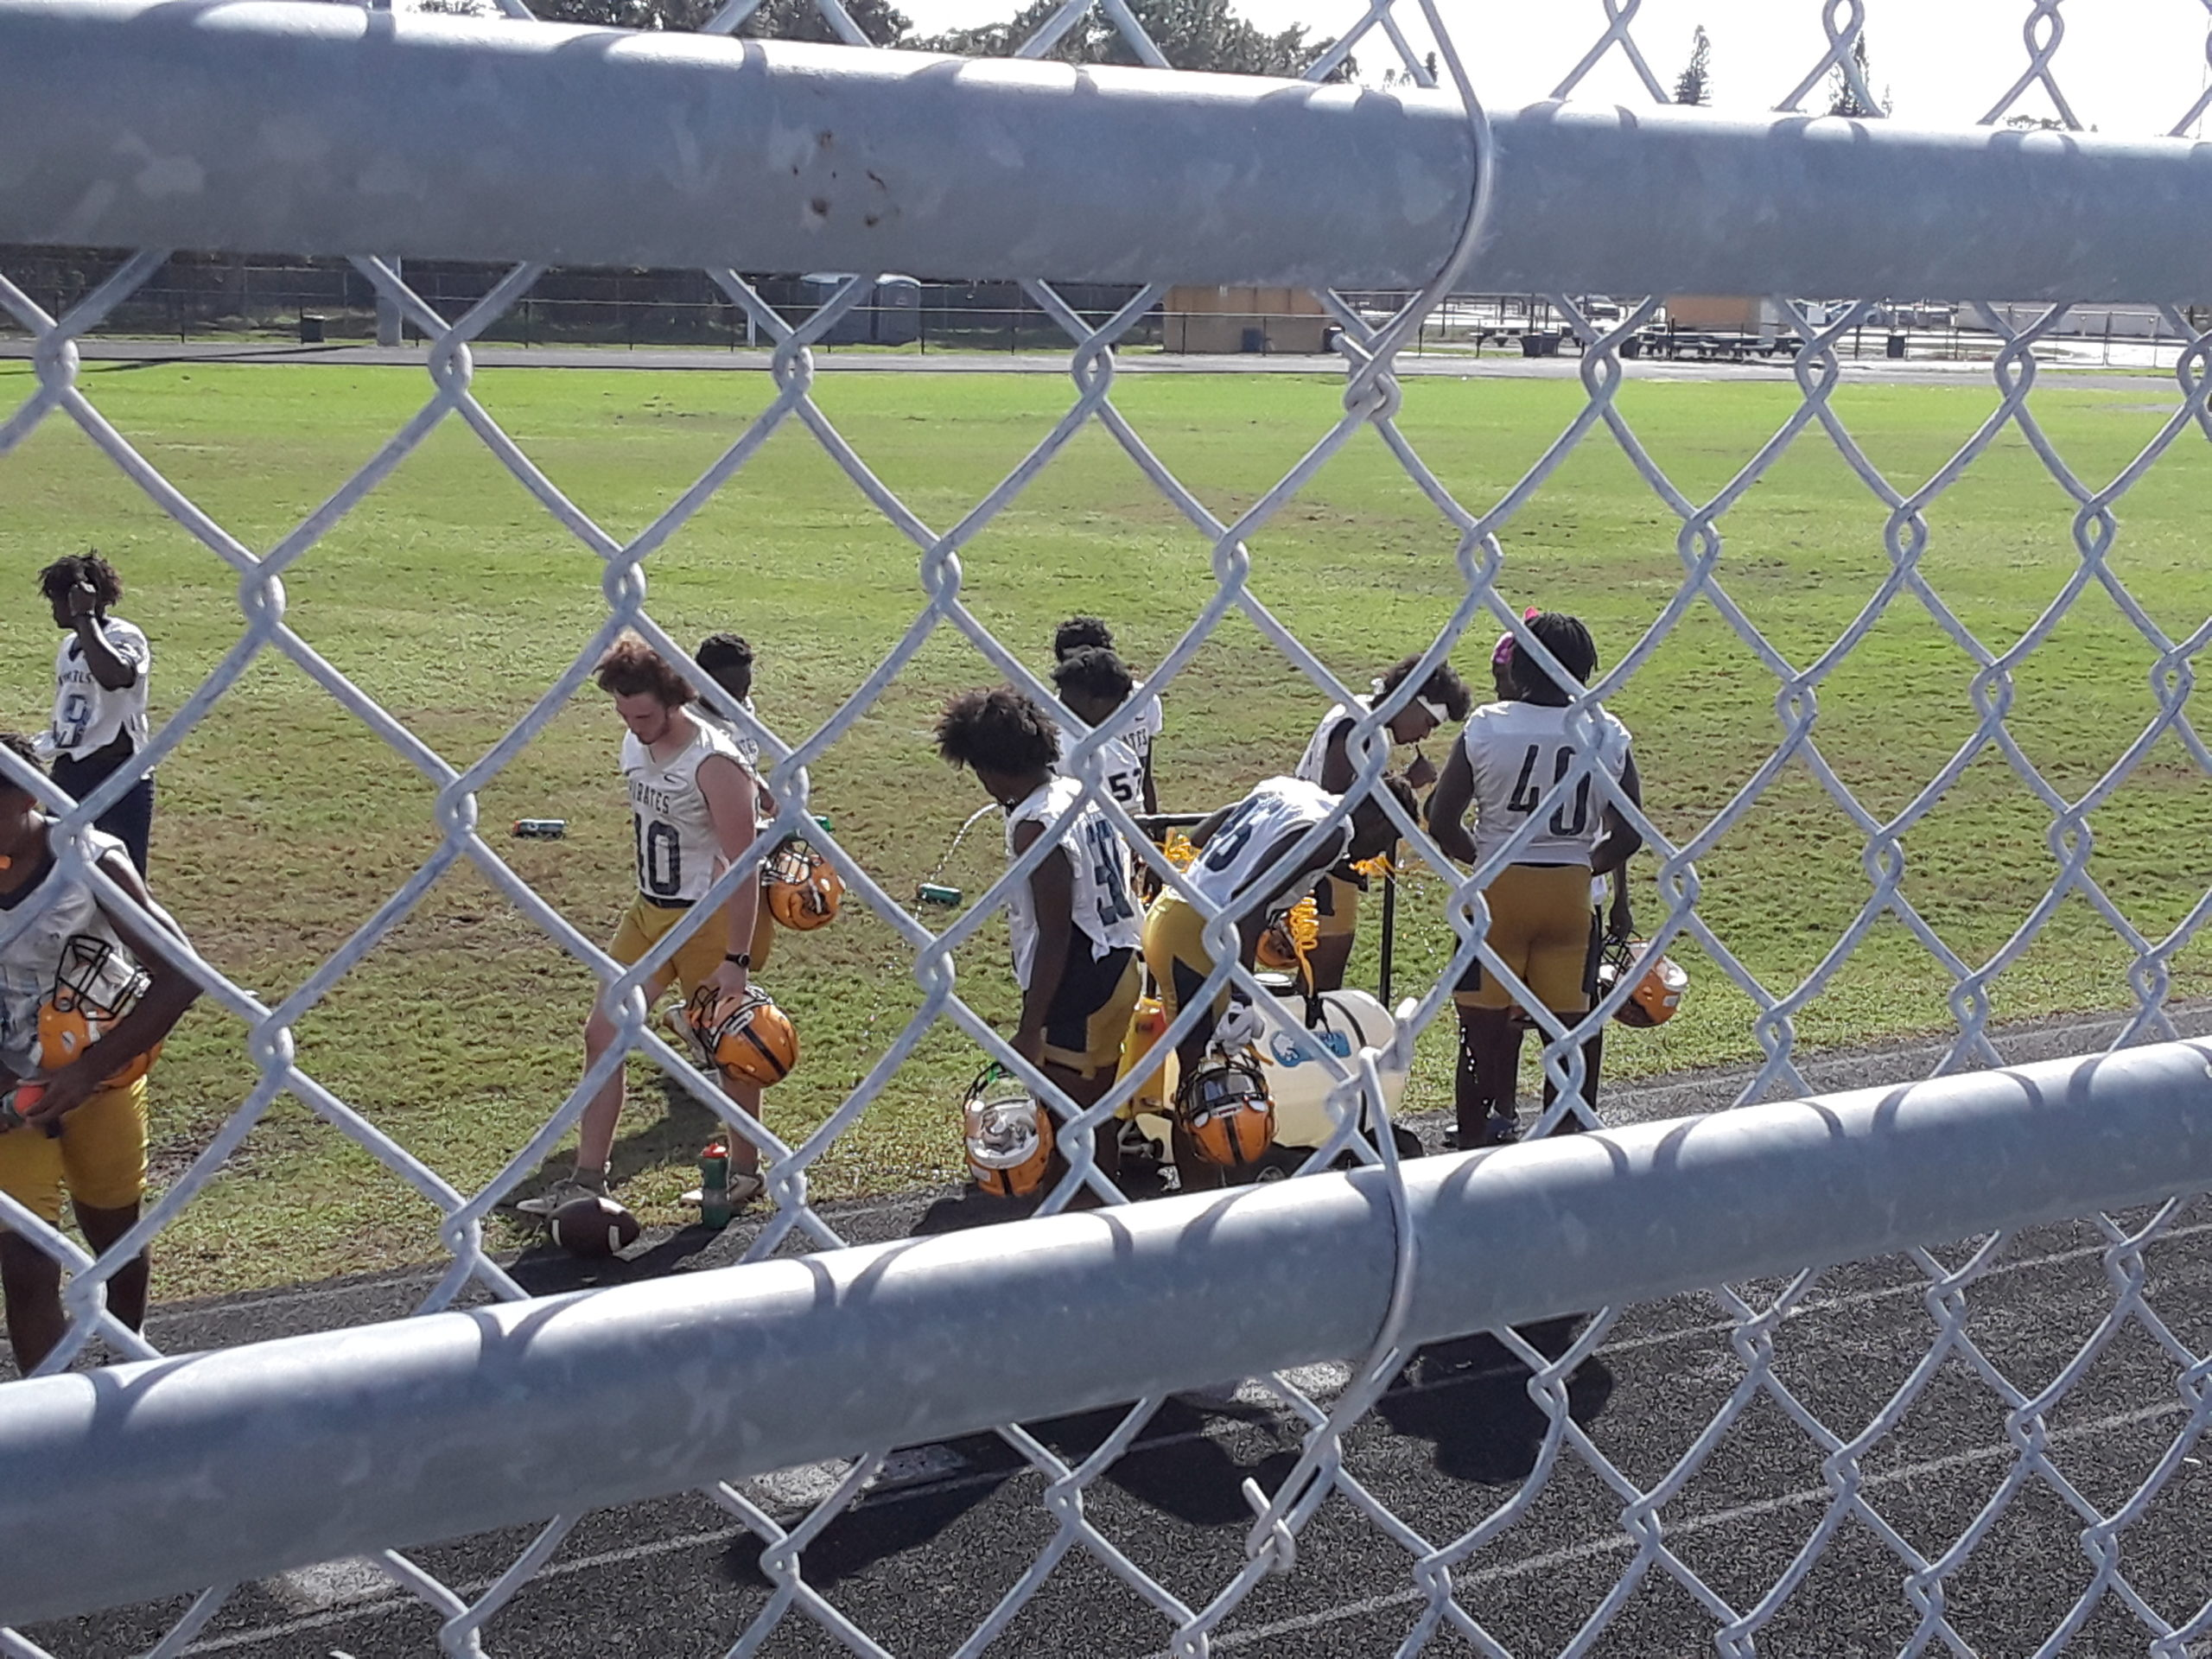 A football team practice photographed through a chainlink fence.